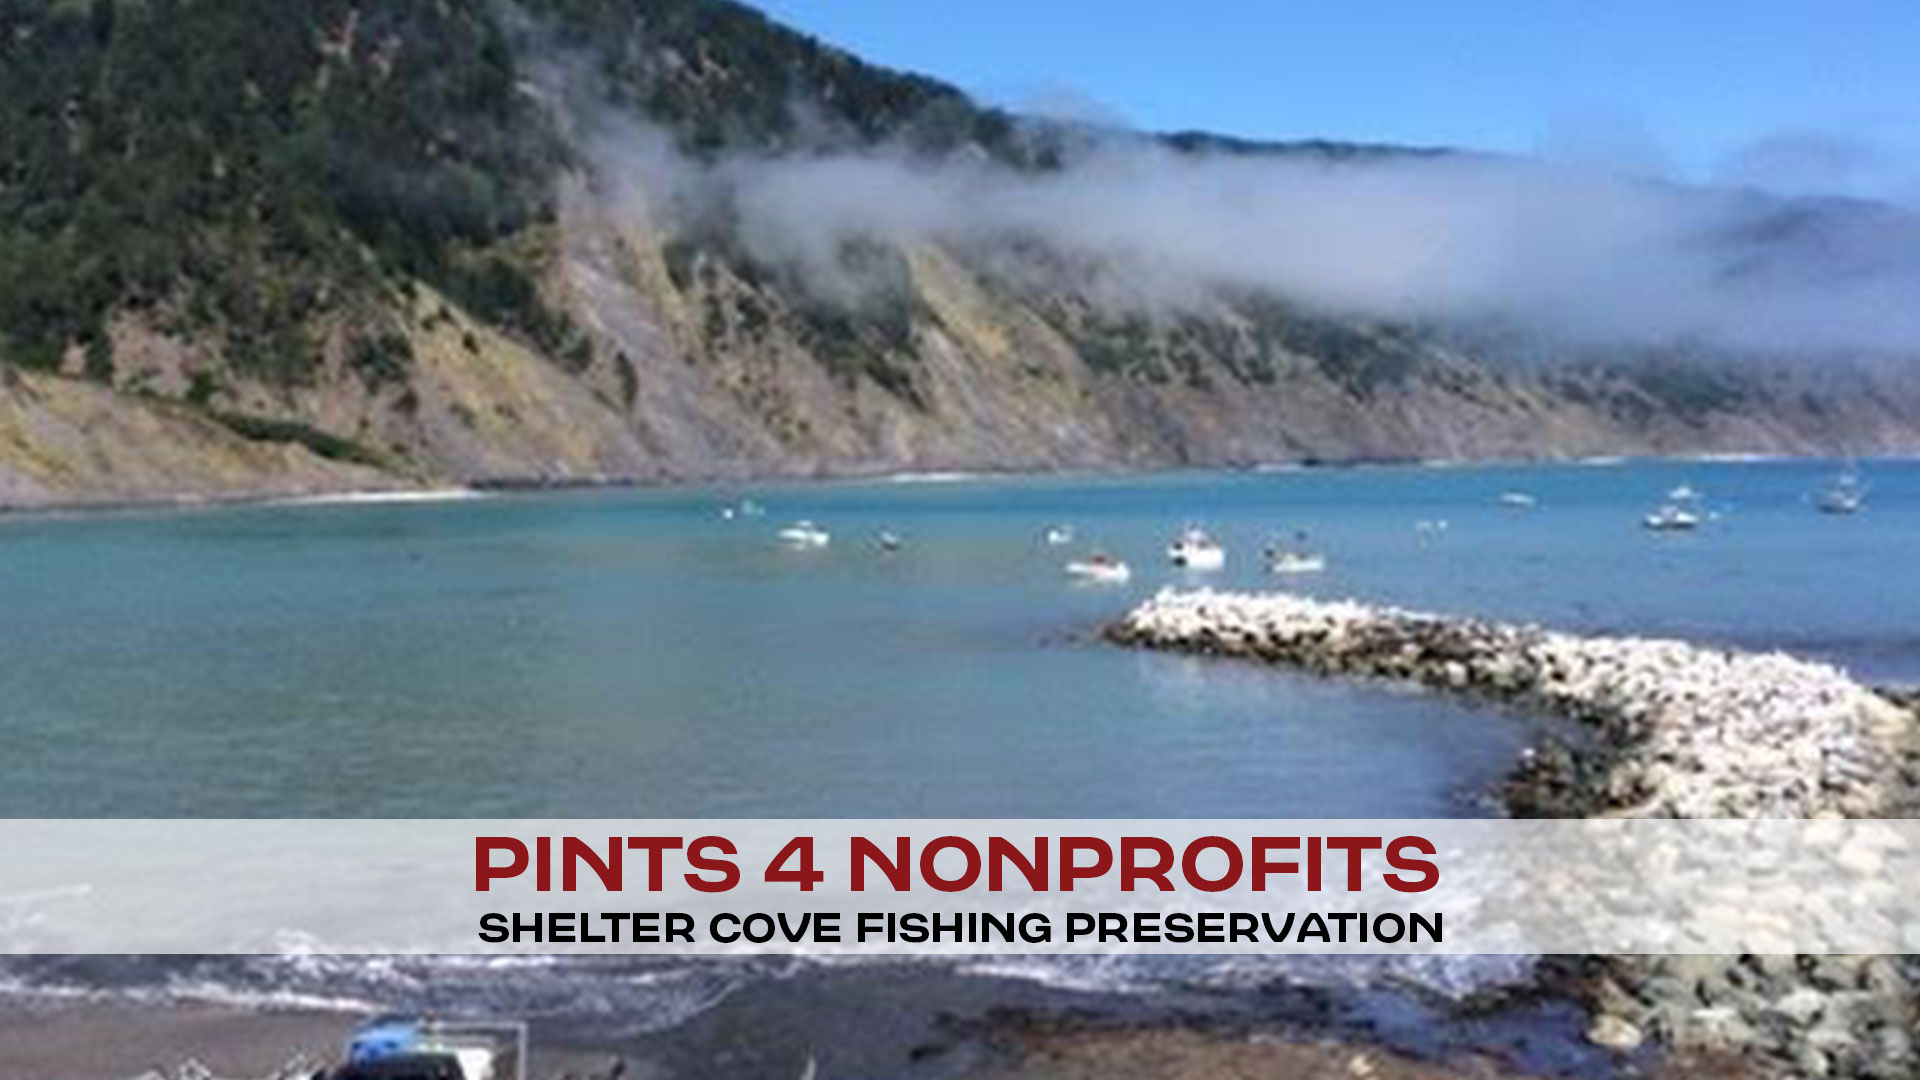 pn4p-shelter-cove-fishing-preservation